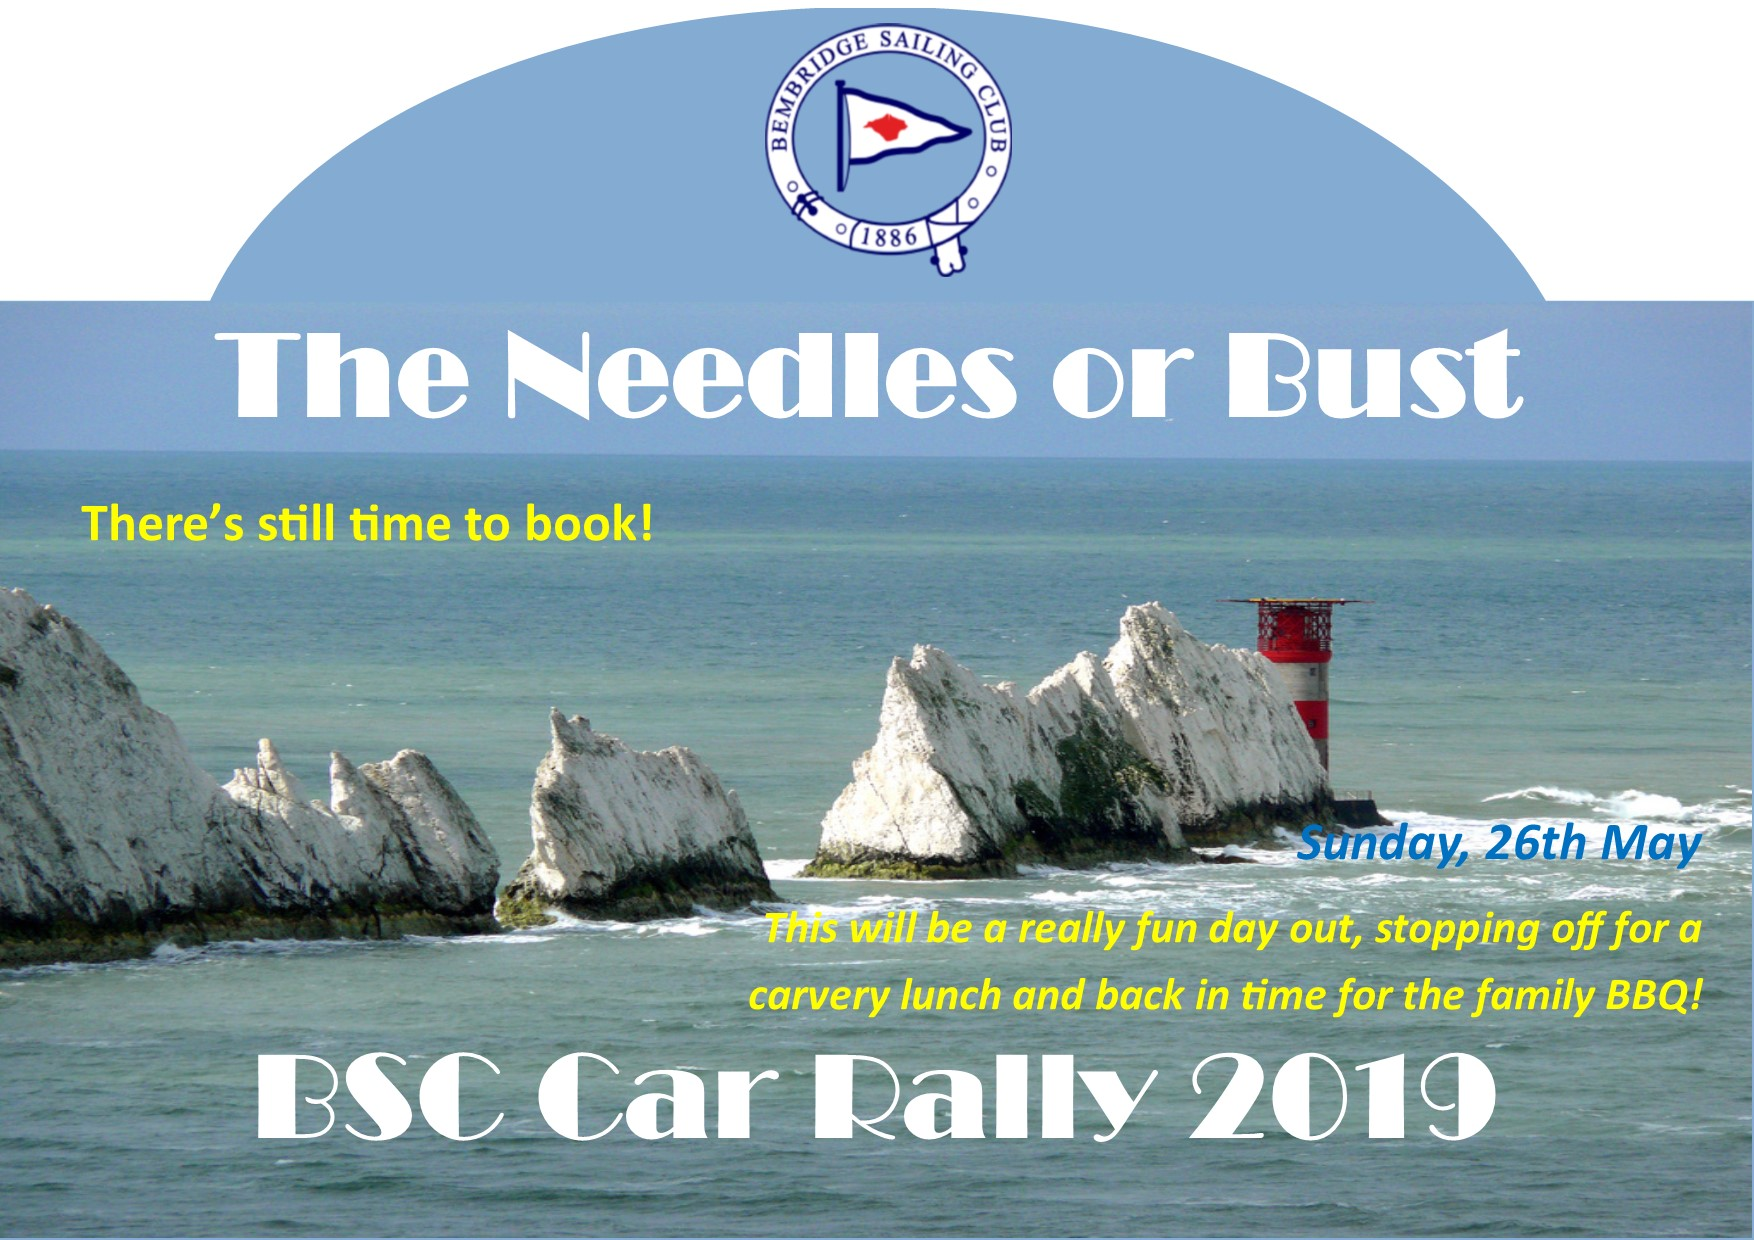 CLASSIC CAR RALLY MAY 26 2019